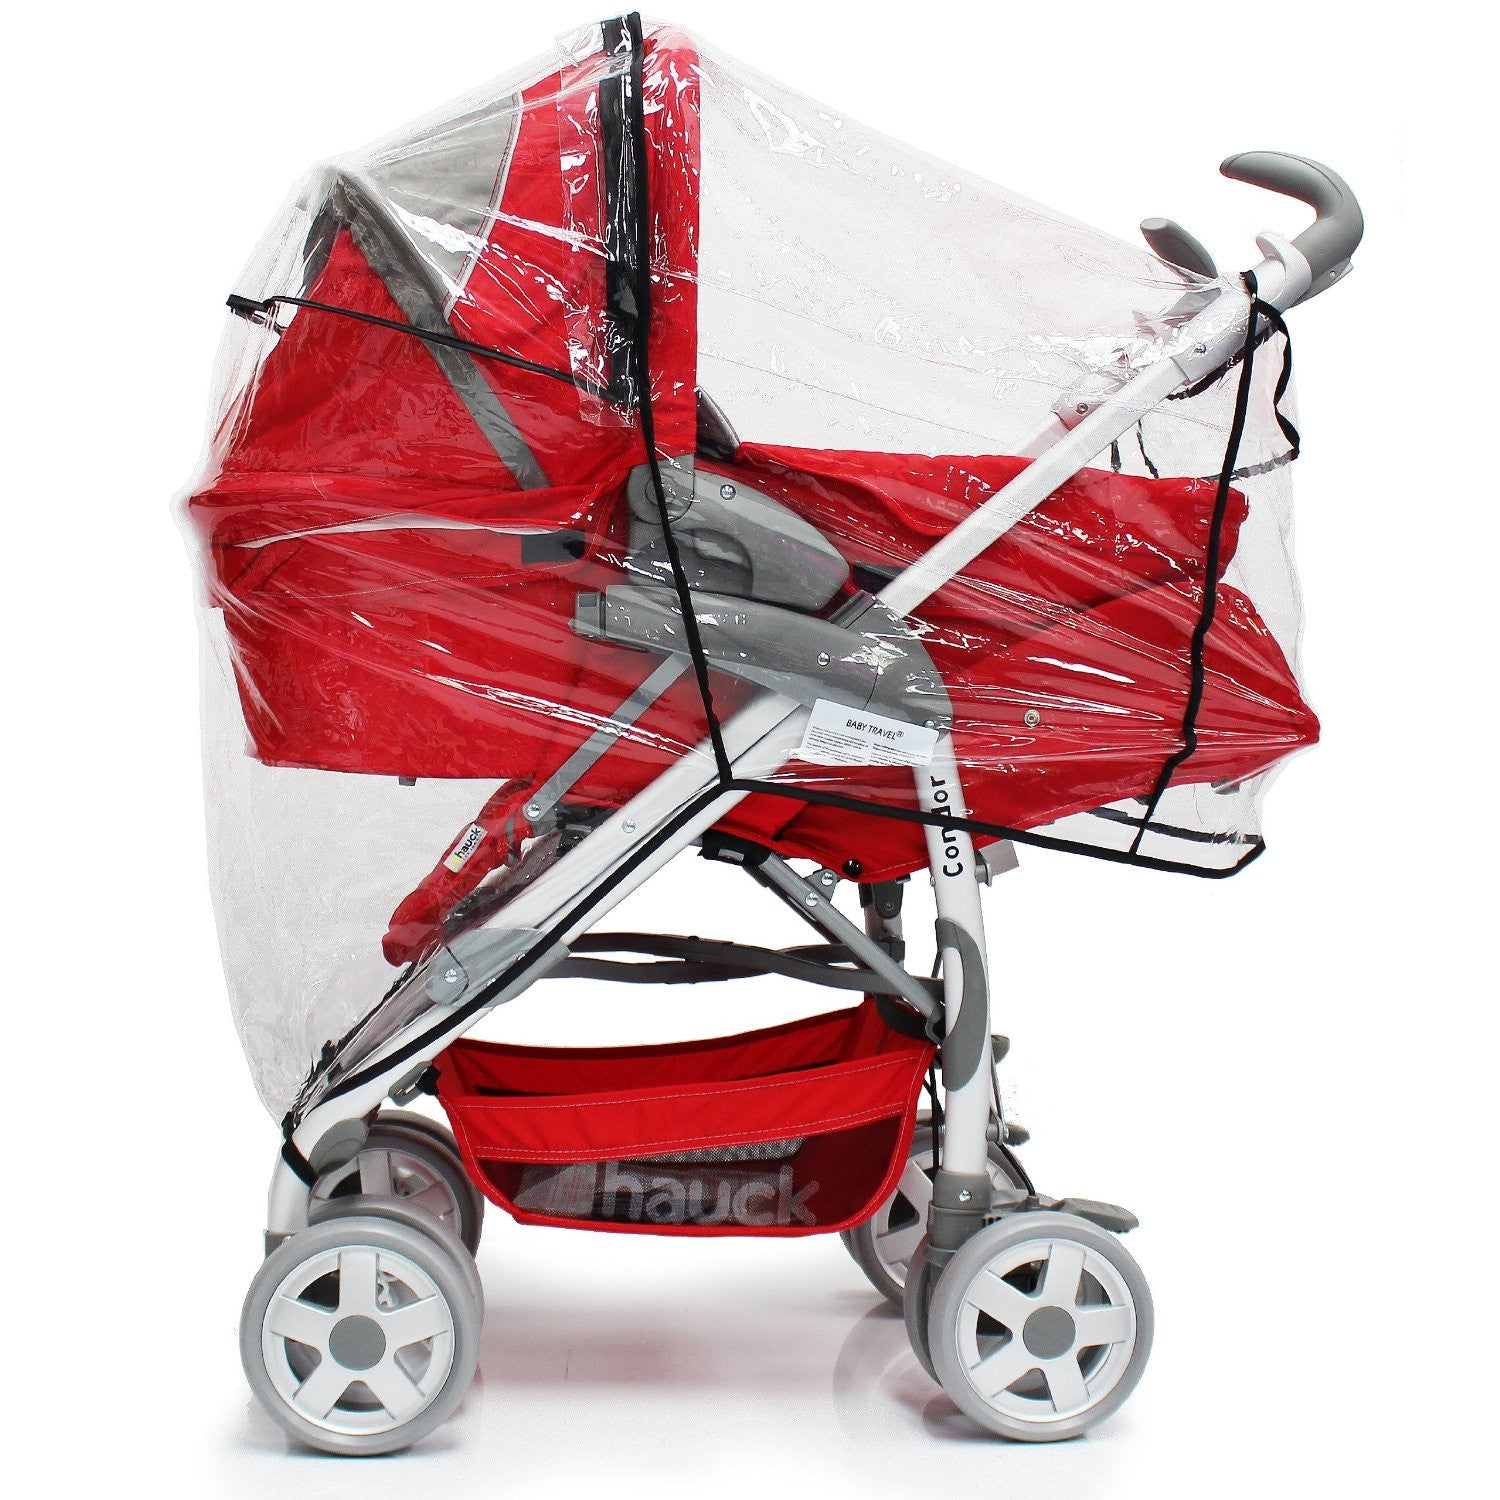 Hauck Viper Trio Set  In  Travel System Reviews